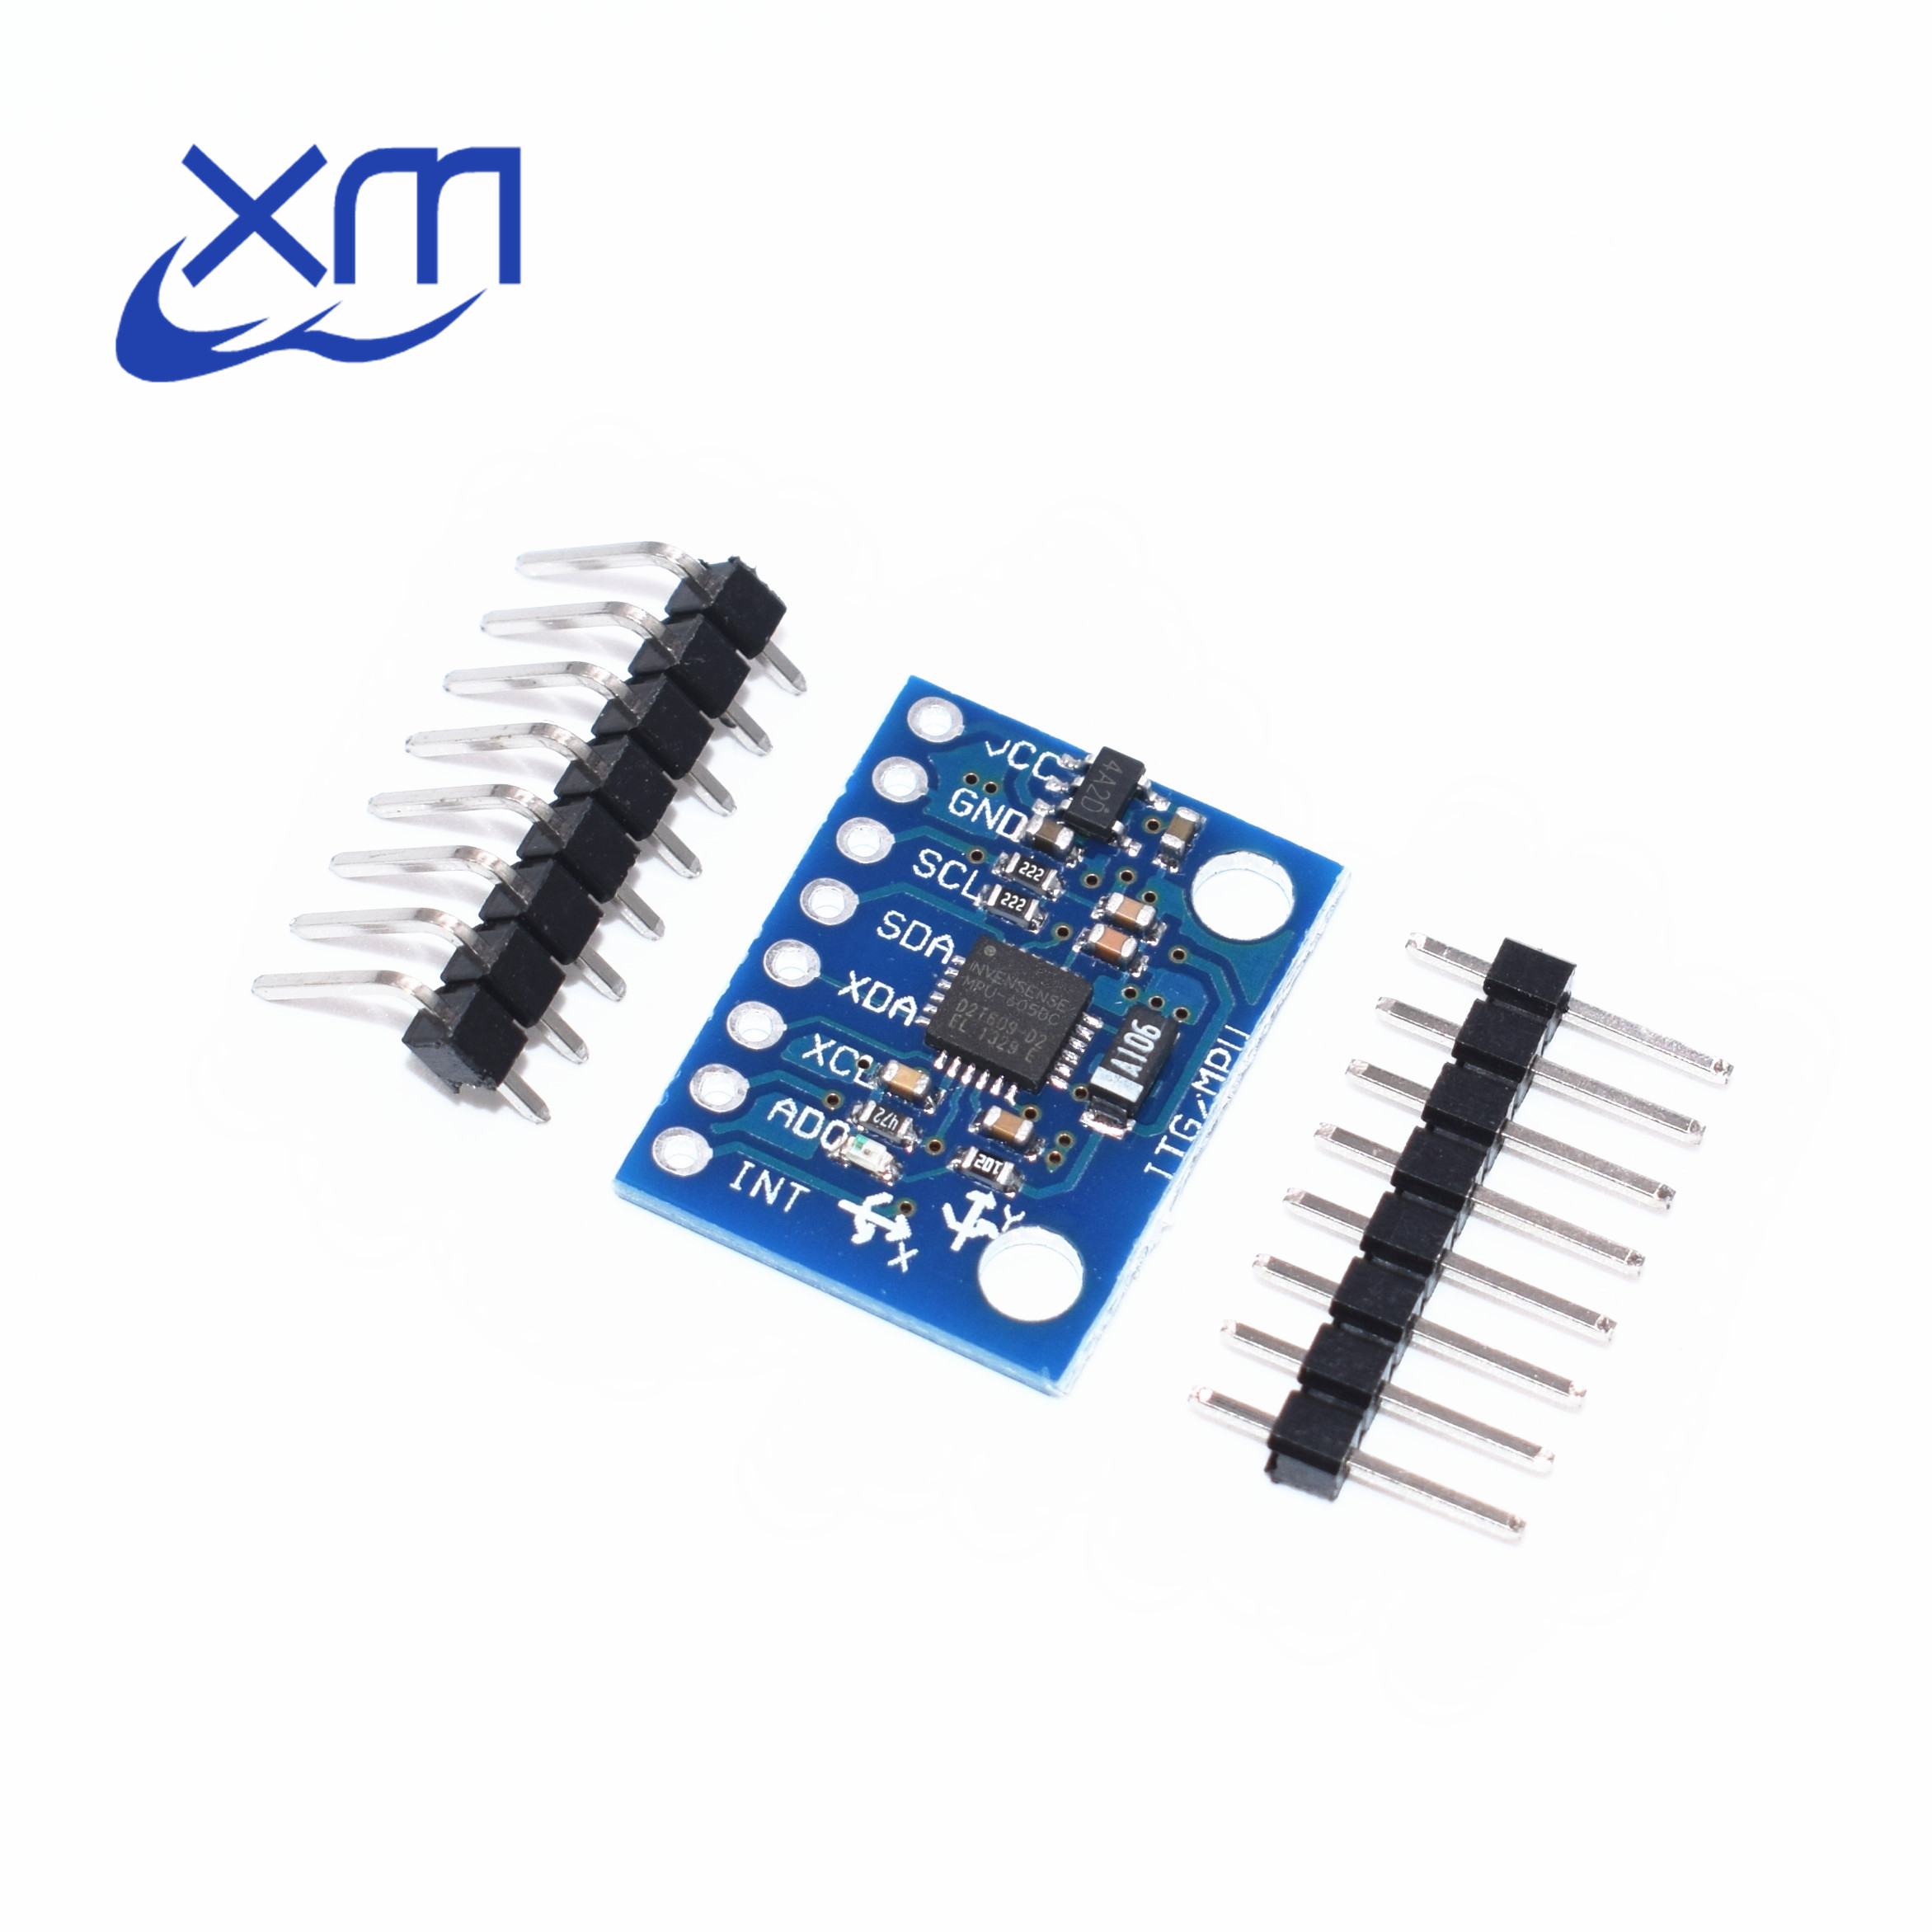 50PCS GY 521 MPU 6050 MPU6050 Module 3 Axis analog gyro sensors+ 3 Axis Accelerometer Module C74-in Integrated Circuits from Electronic Components & Supplies